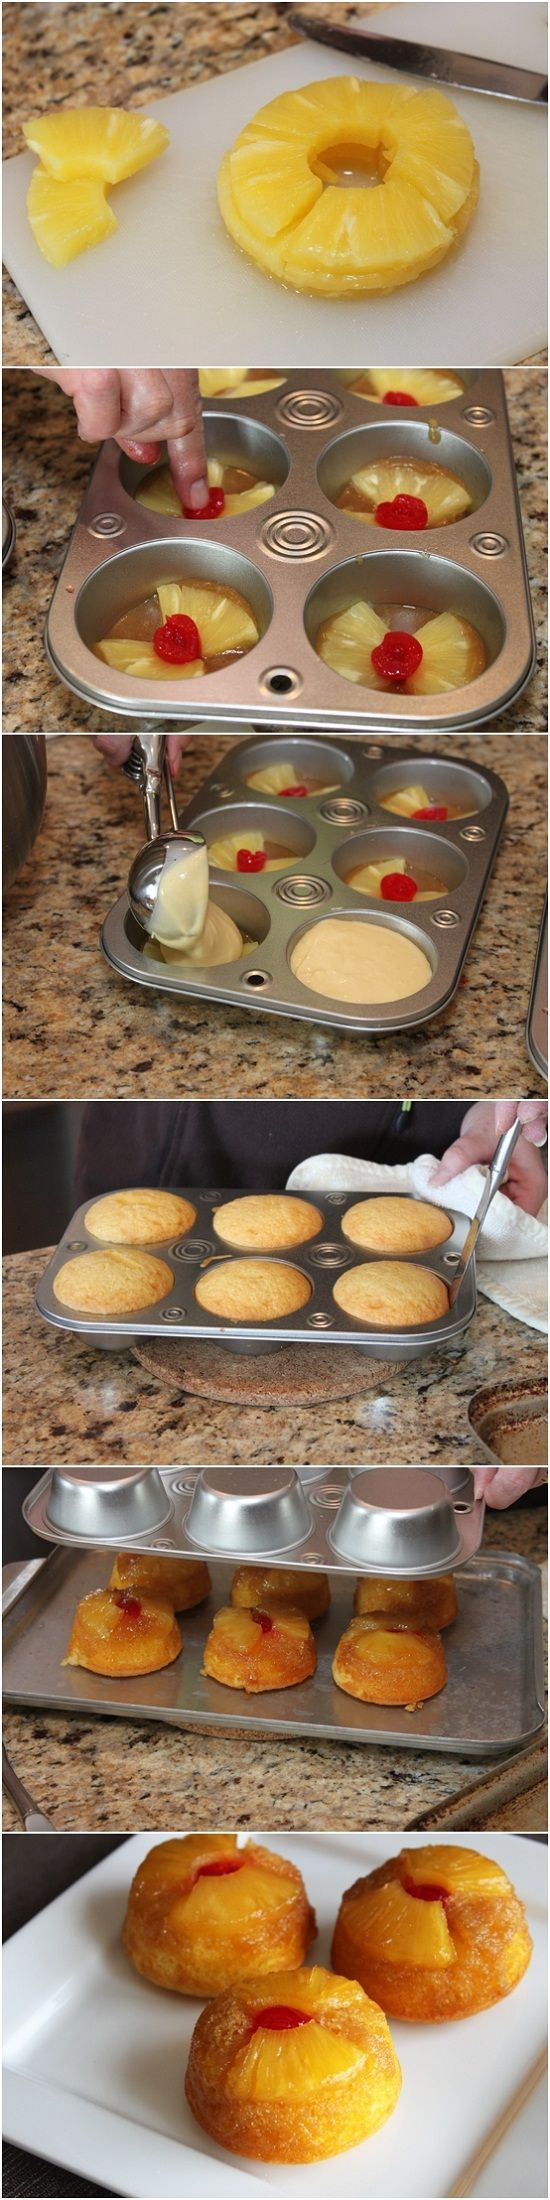 Pineapple Upside-Down Cupcakes. #Food #Cupcakes